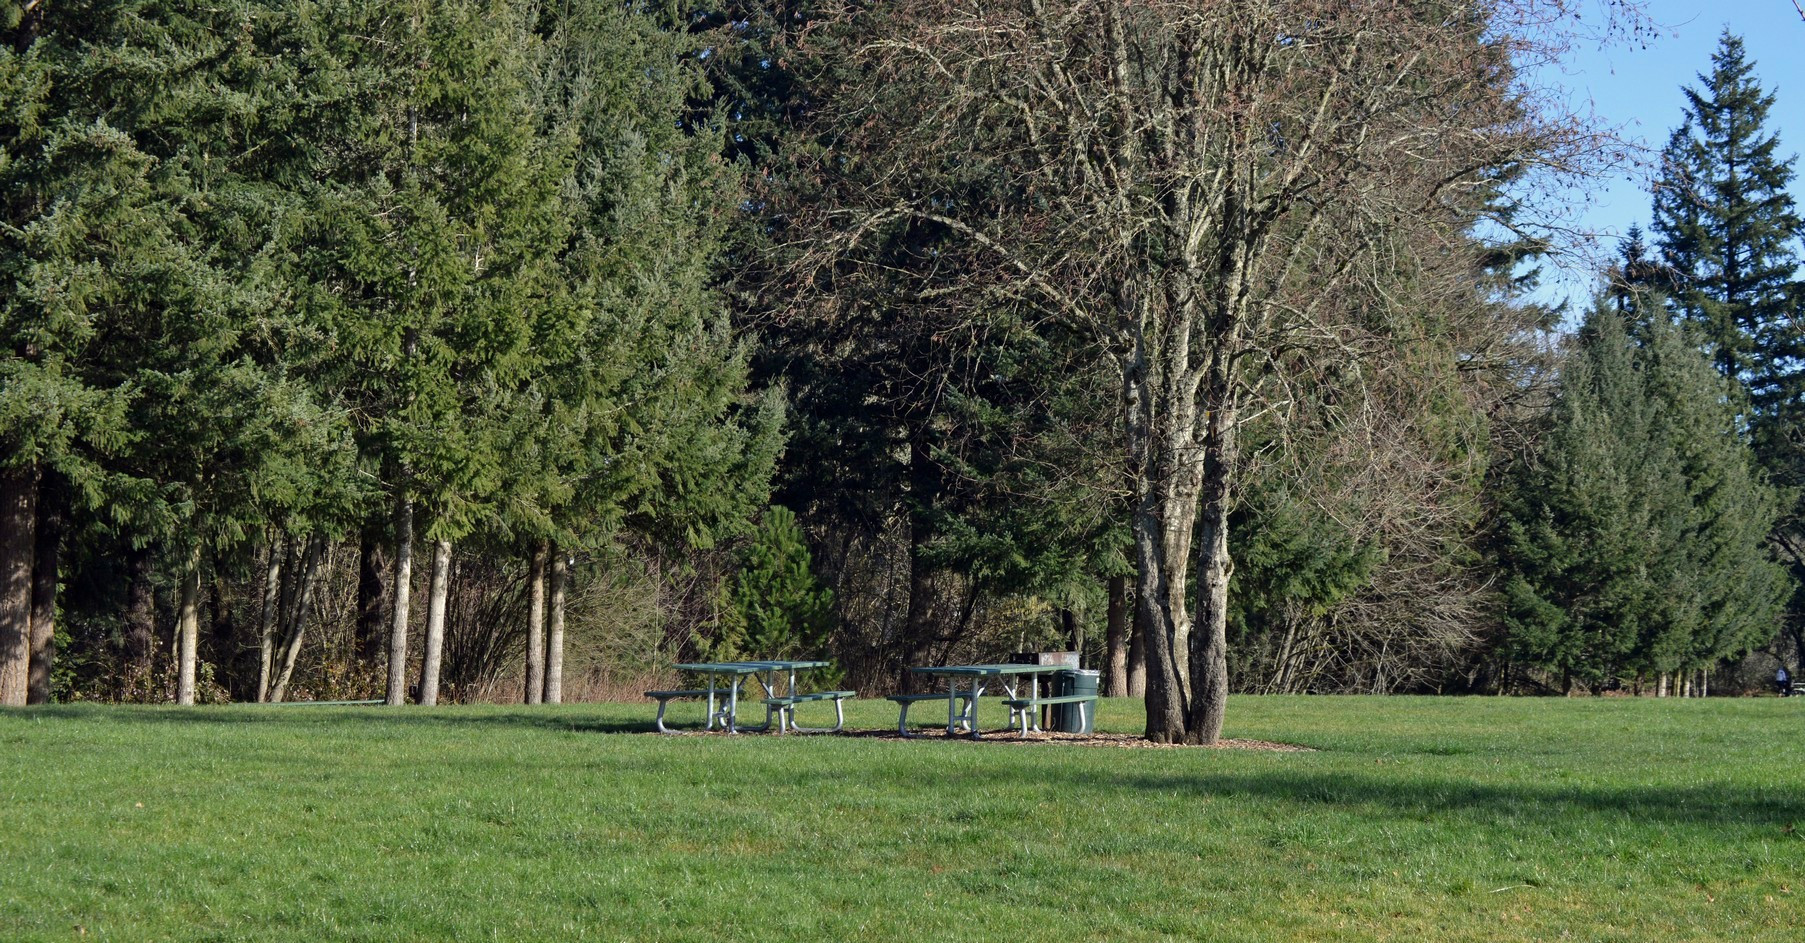 25-hillsboro-parks-and-recreation-rood-bridge-park-the-kelly-group-real-estate